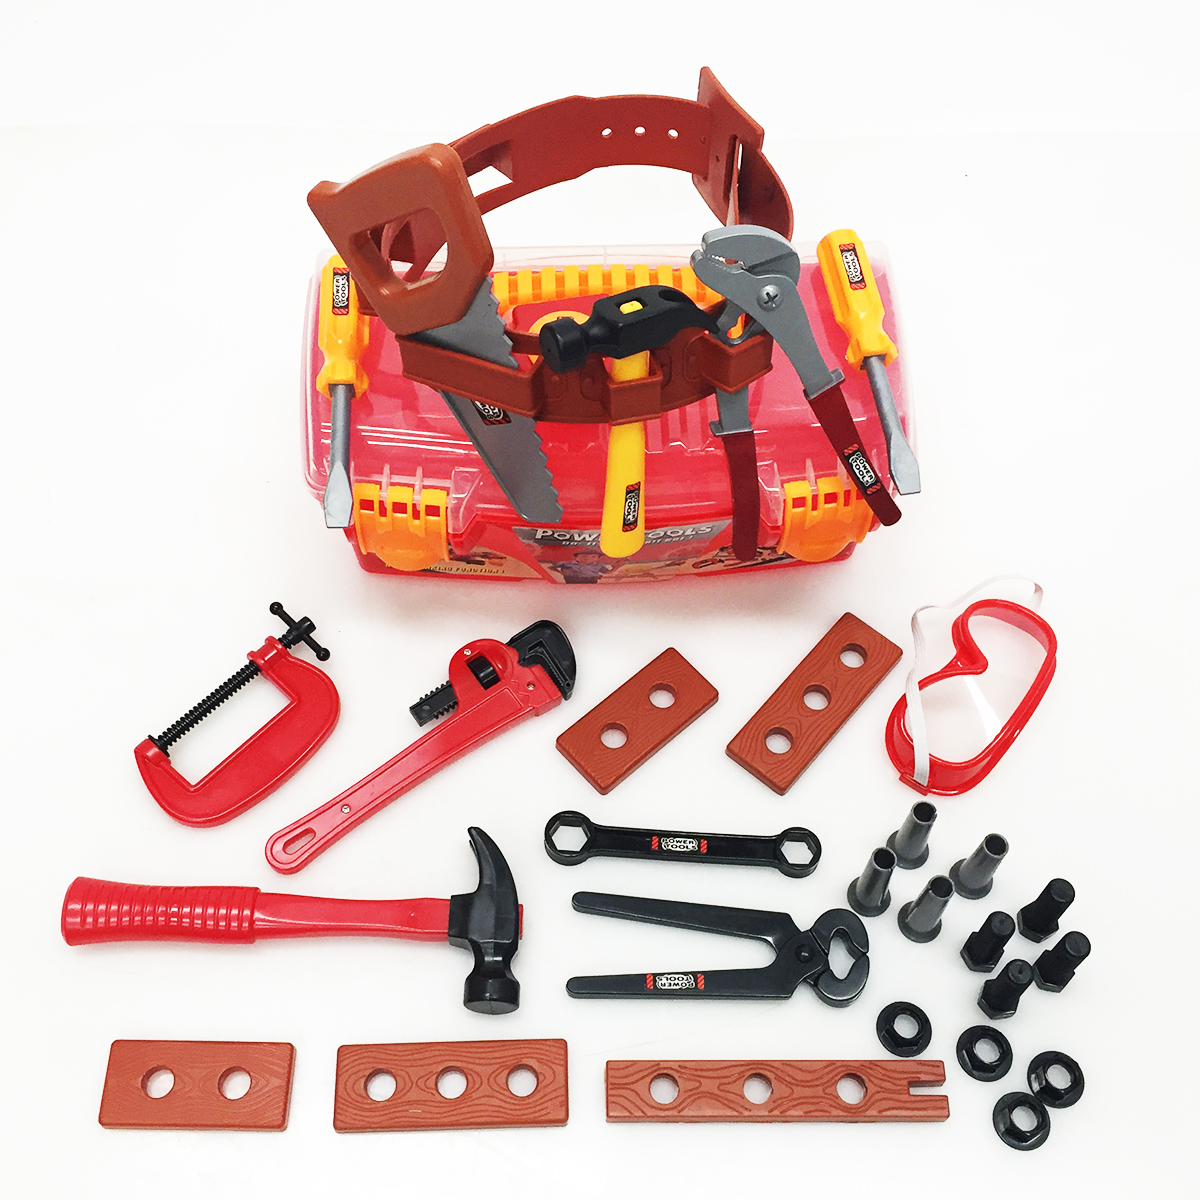 Toy Tools For Boys : Power tools for kids construction toys boys toddlers